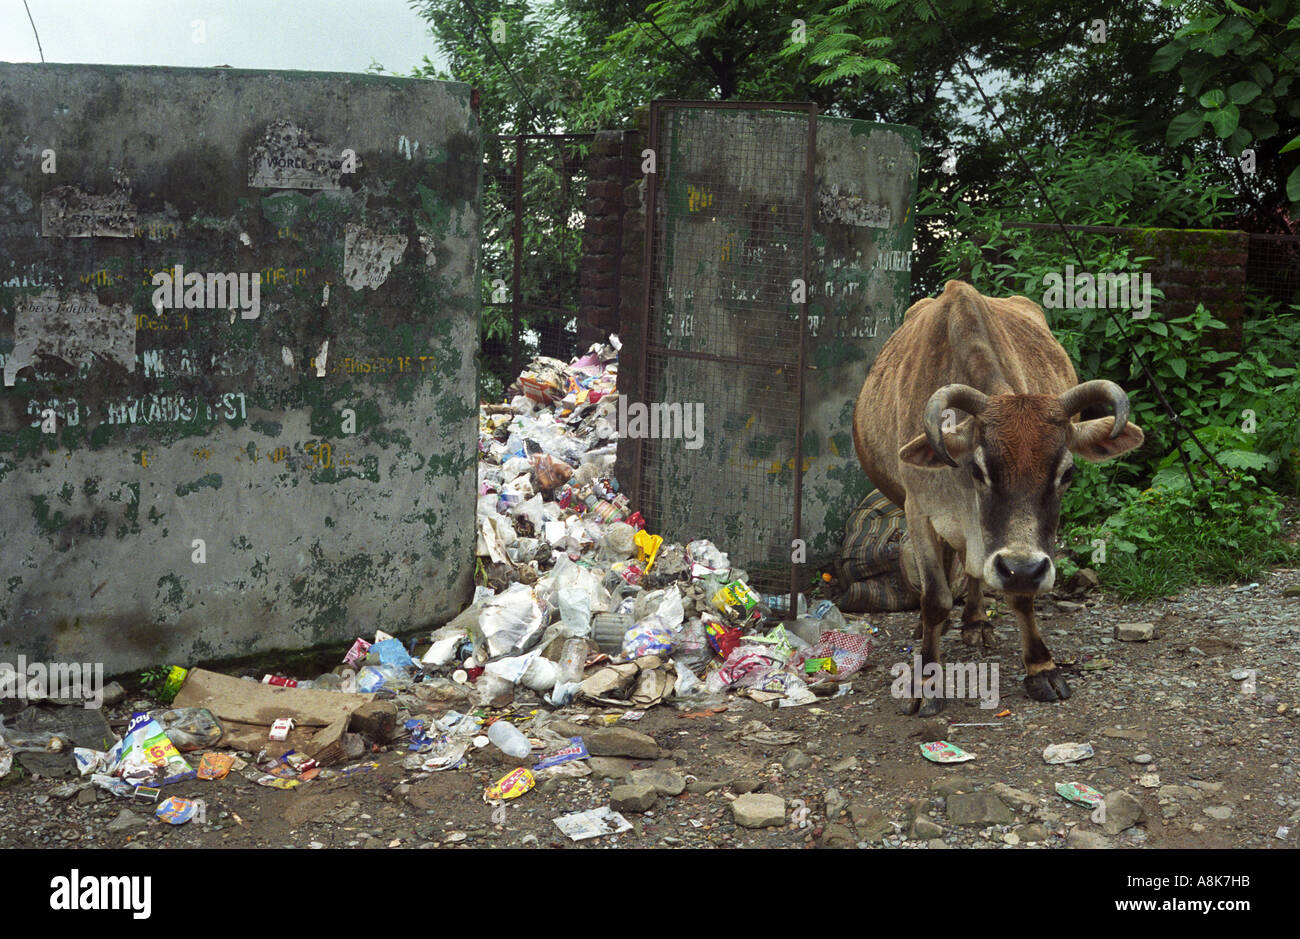 A sacred cow stands near the local garbage dump in Dharamsala, India. - Stock Image